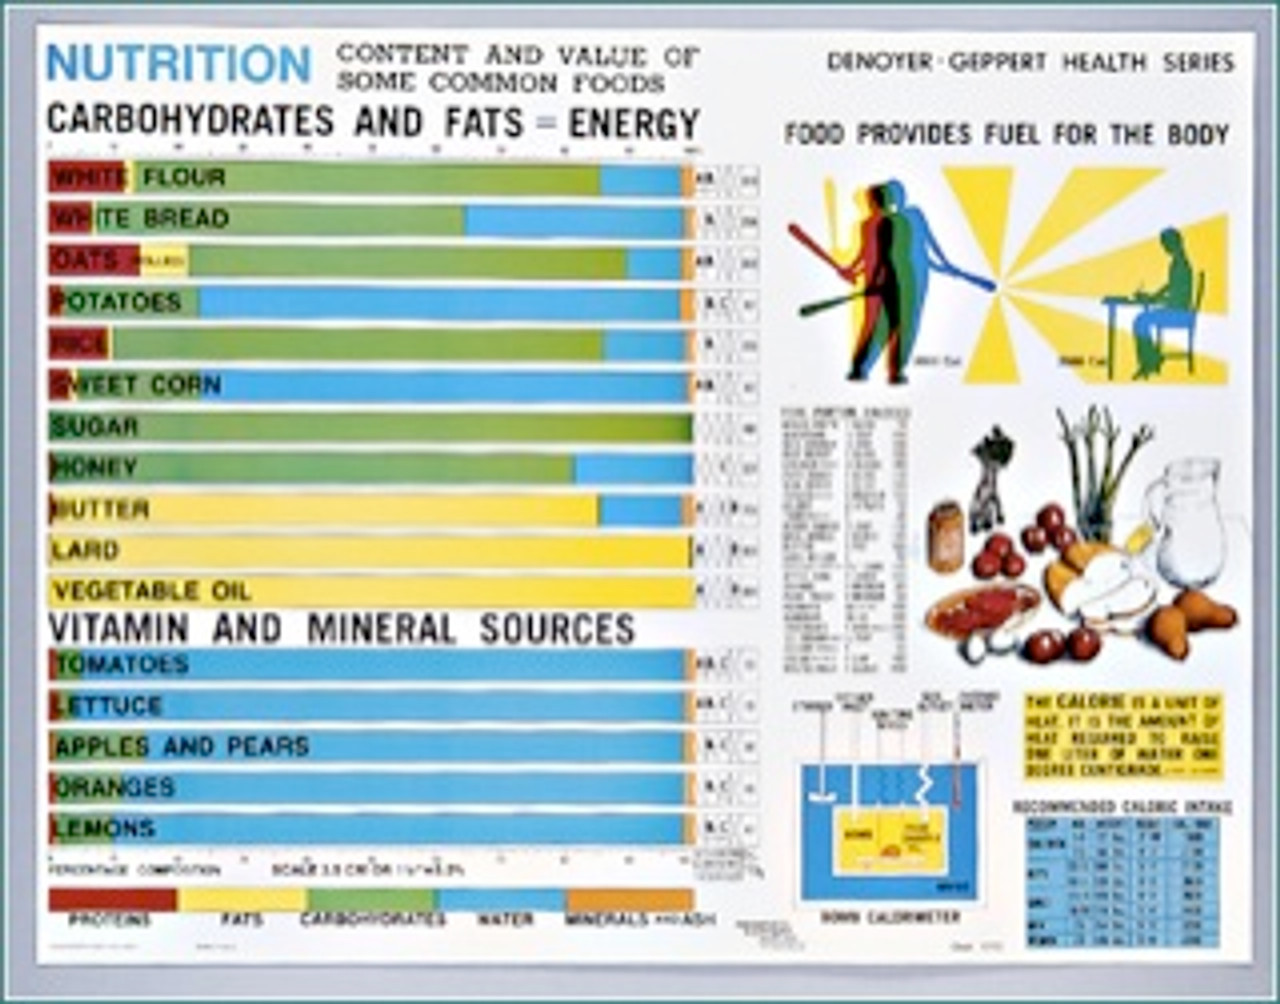 Carbohydrates and Fats Poster